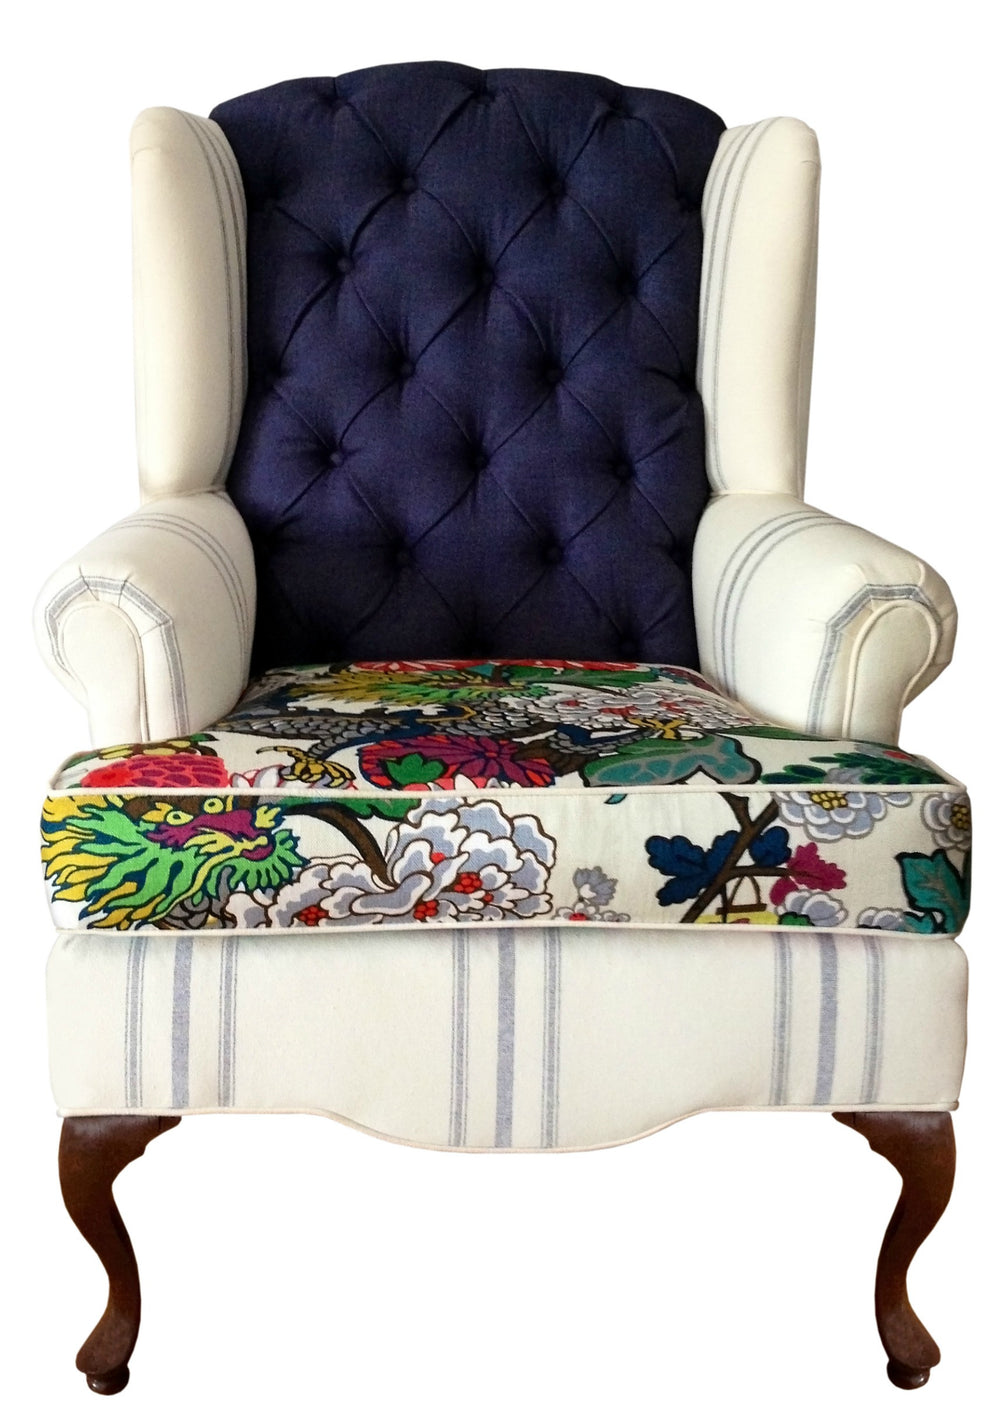 ... Modern Floral And Stripes Traditional Wingback Chair Custom Upholstery  Navy And Cream Creme ...